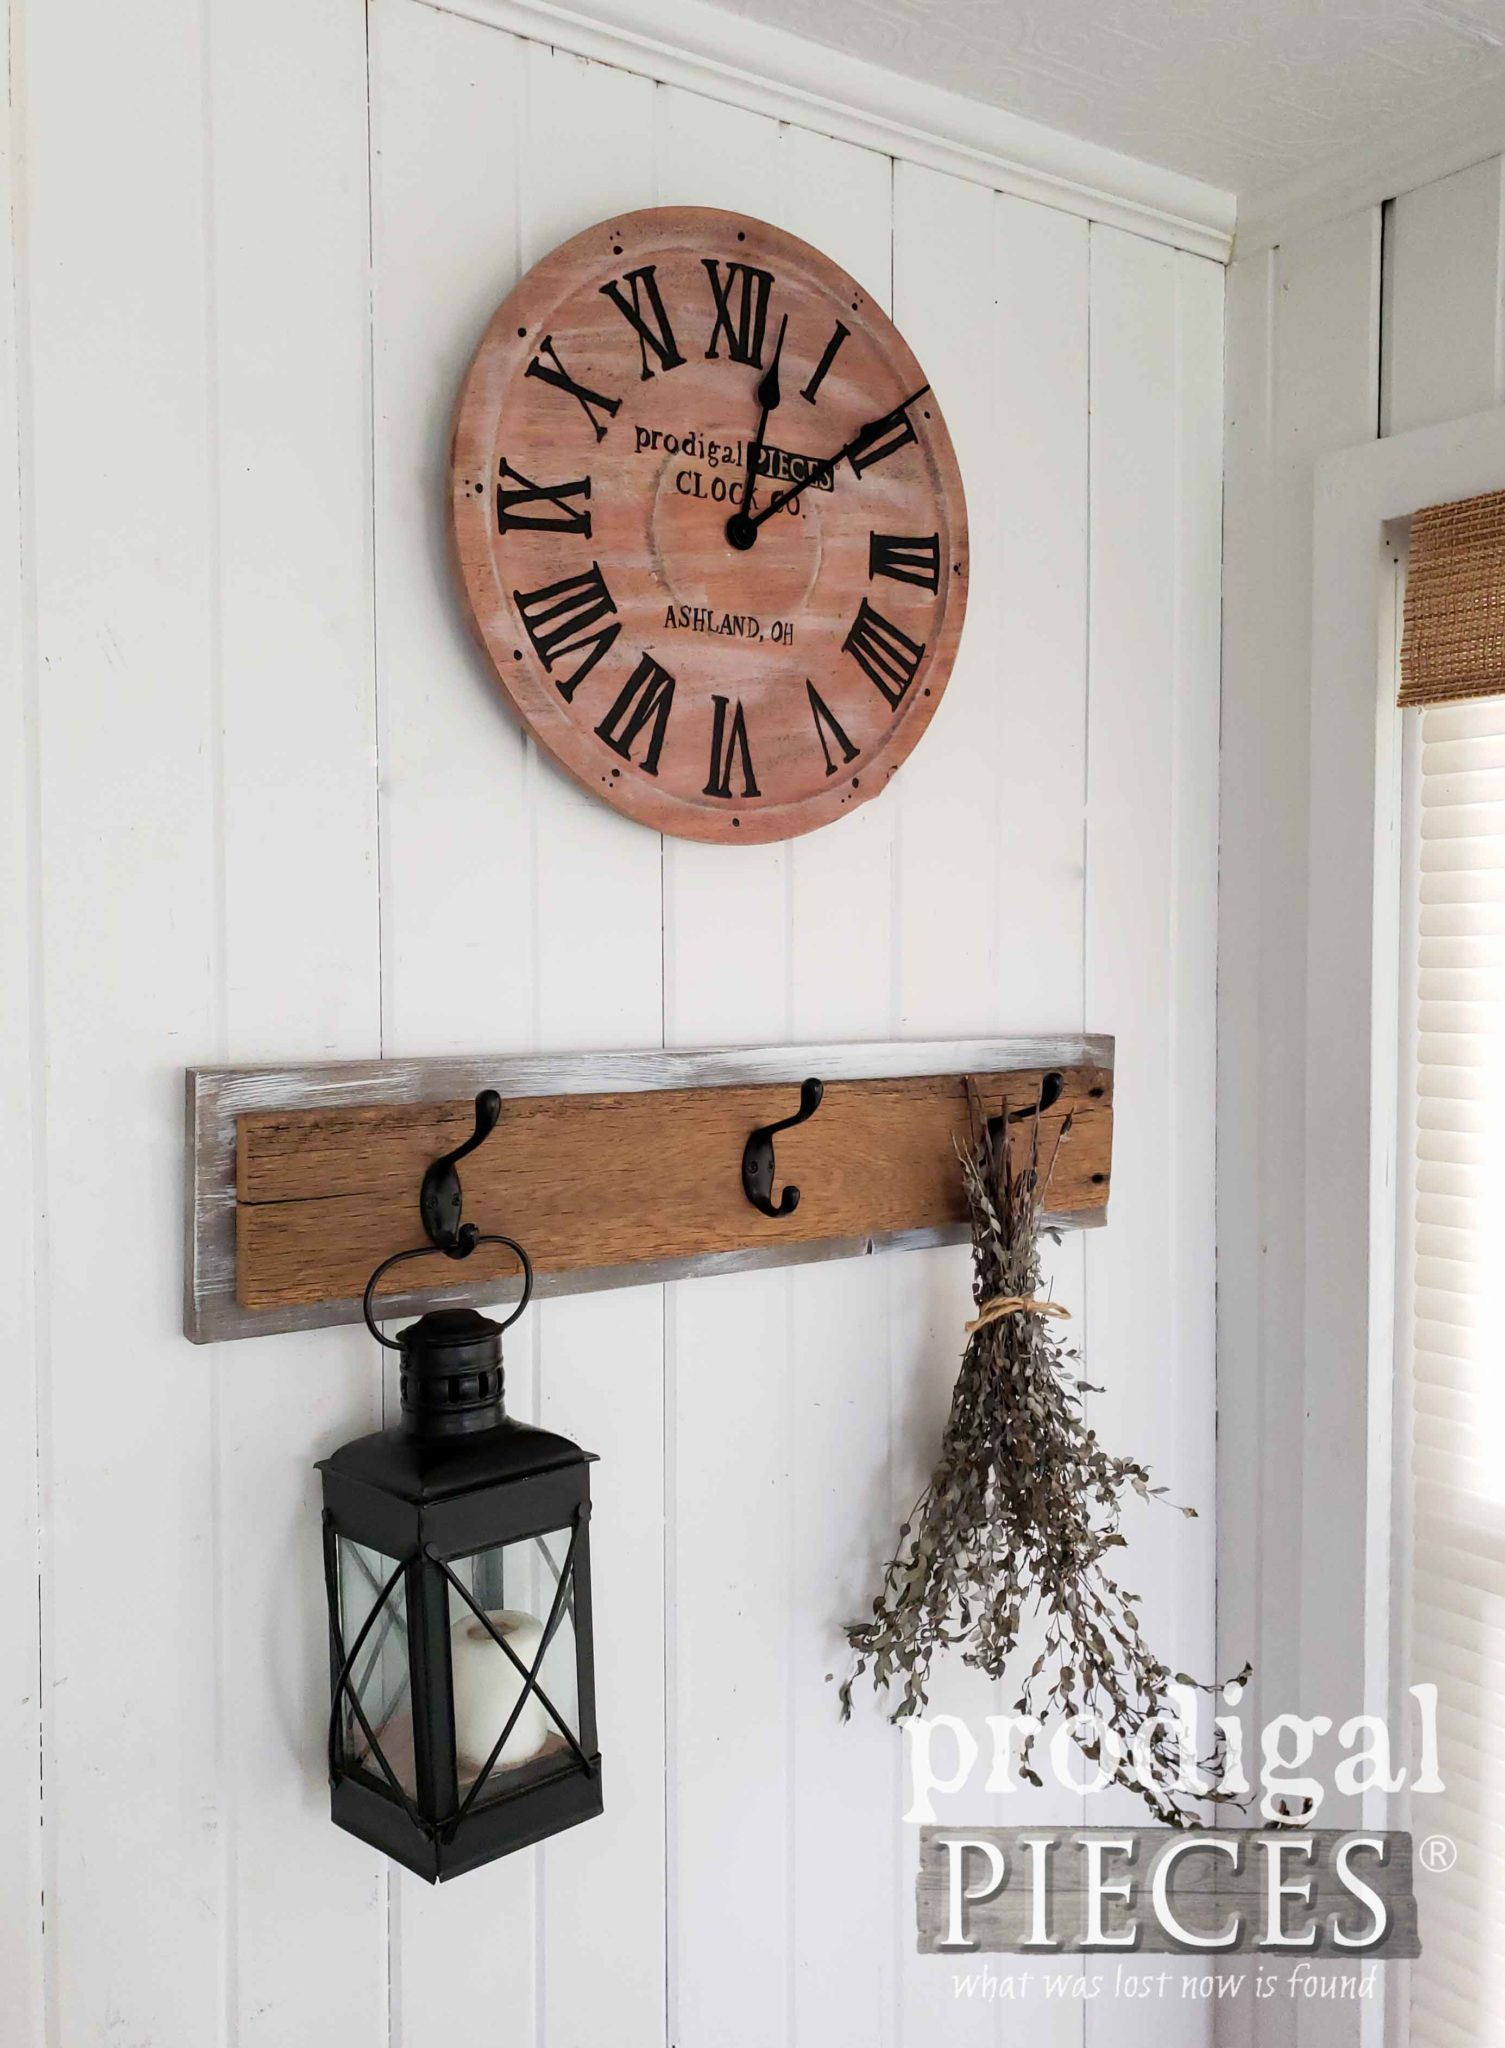 Modern Farm Vignette with Handmade Wall Clock by Larissa of Prodigal Pieces | prodigalpieces.com